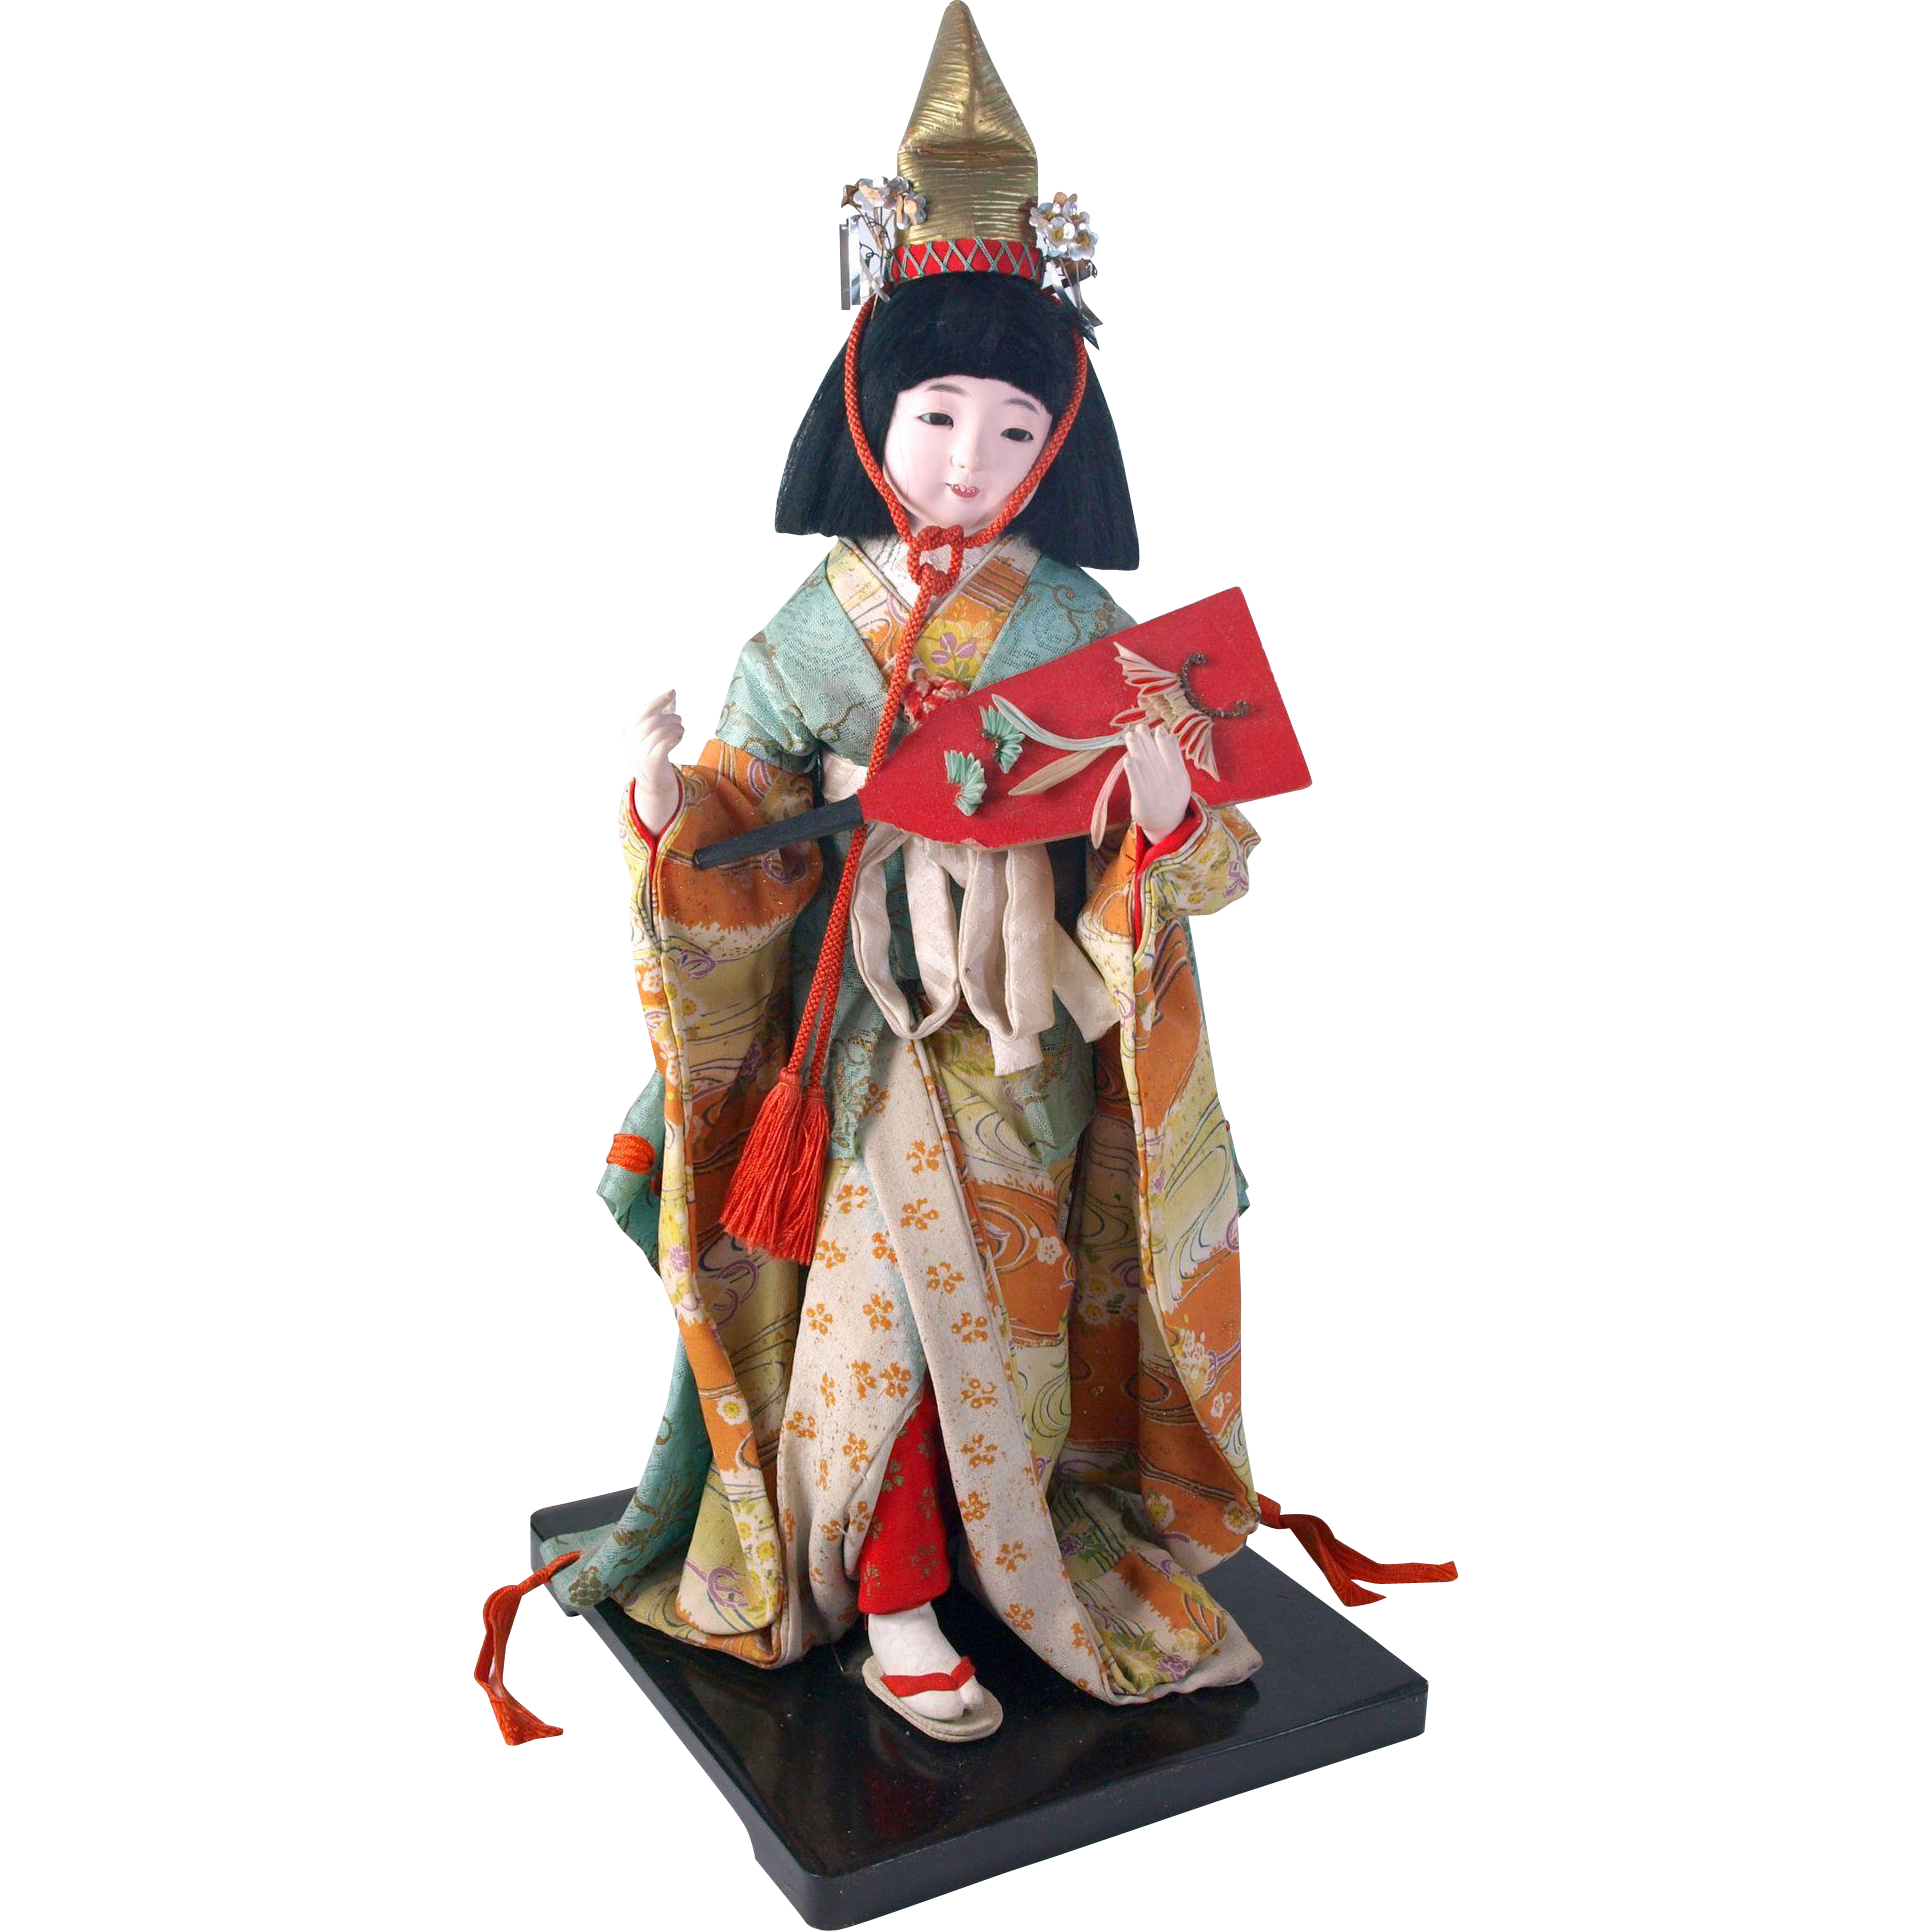 Beautiful Japanese gofun smiling lady doll open closed mouth original costume mounted on black lacquer wood stand Japan 17.5 inches